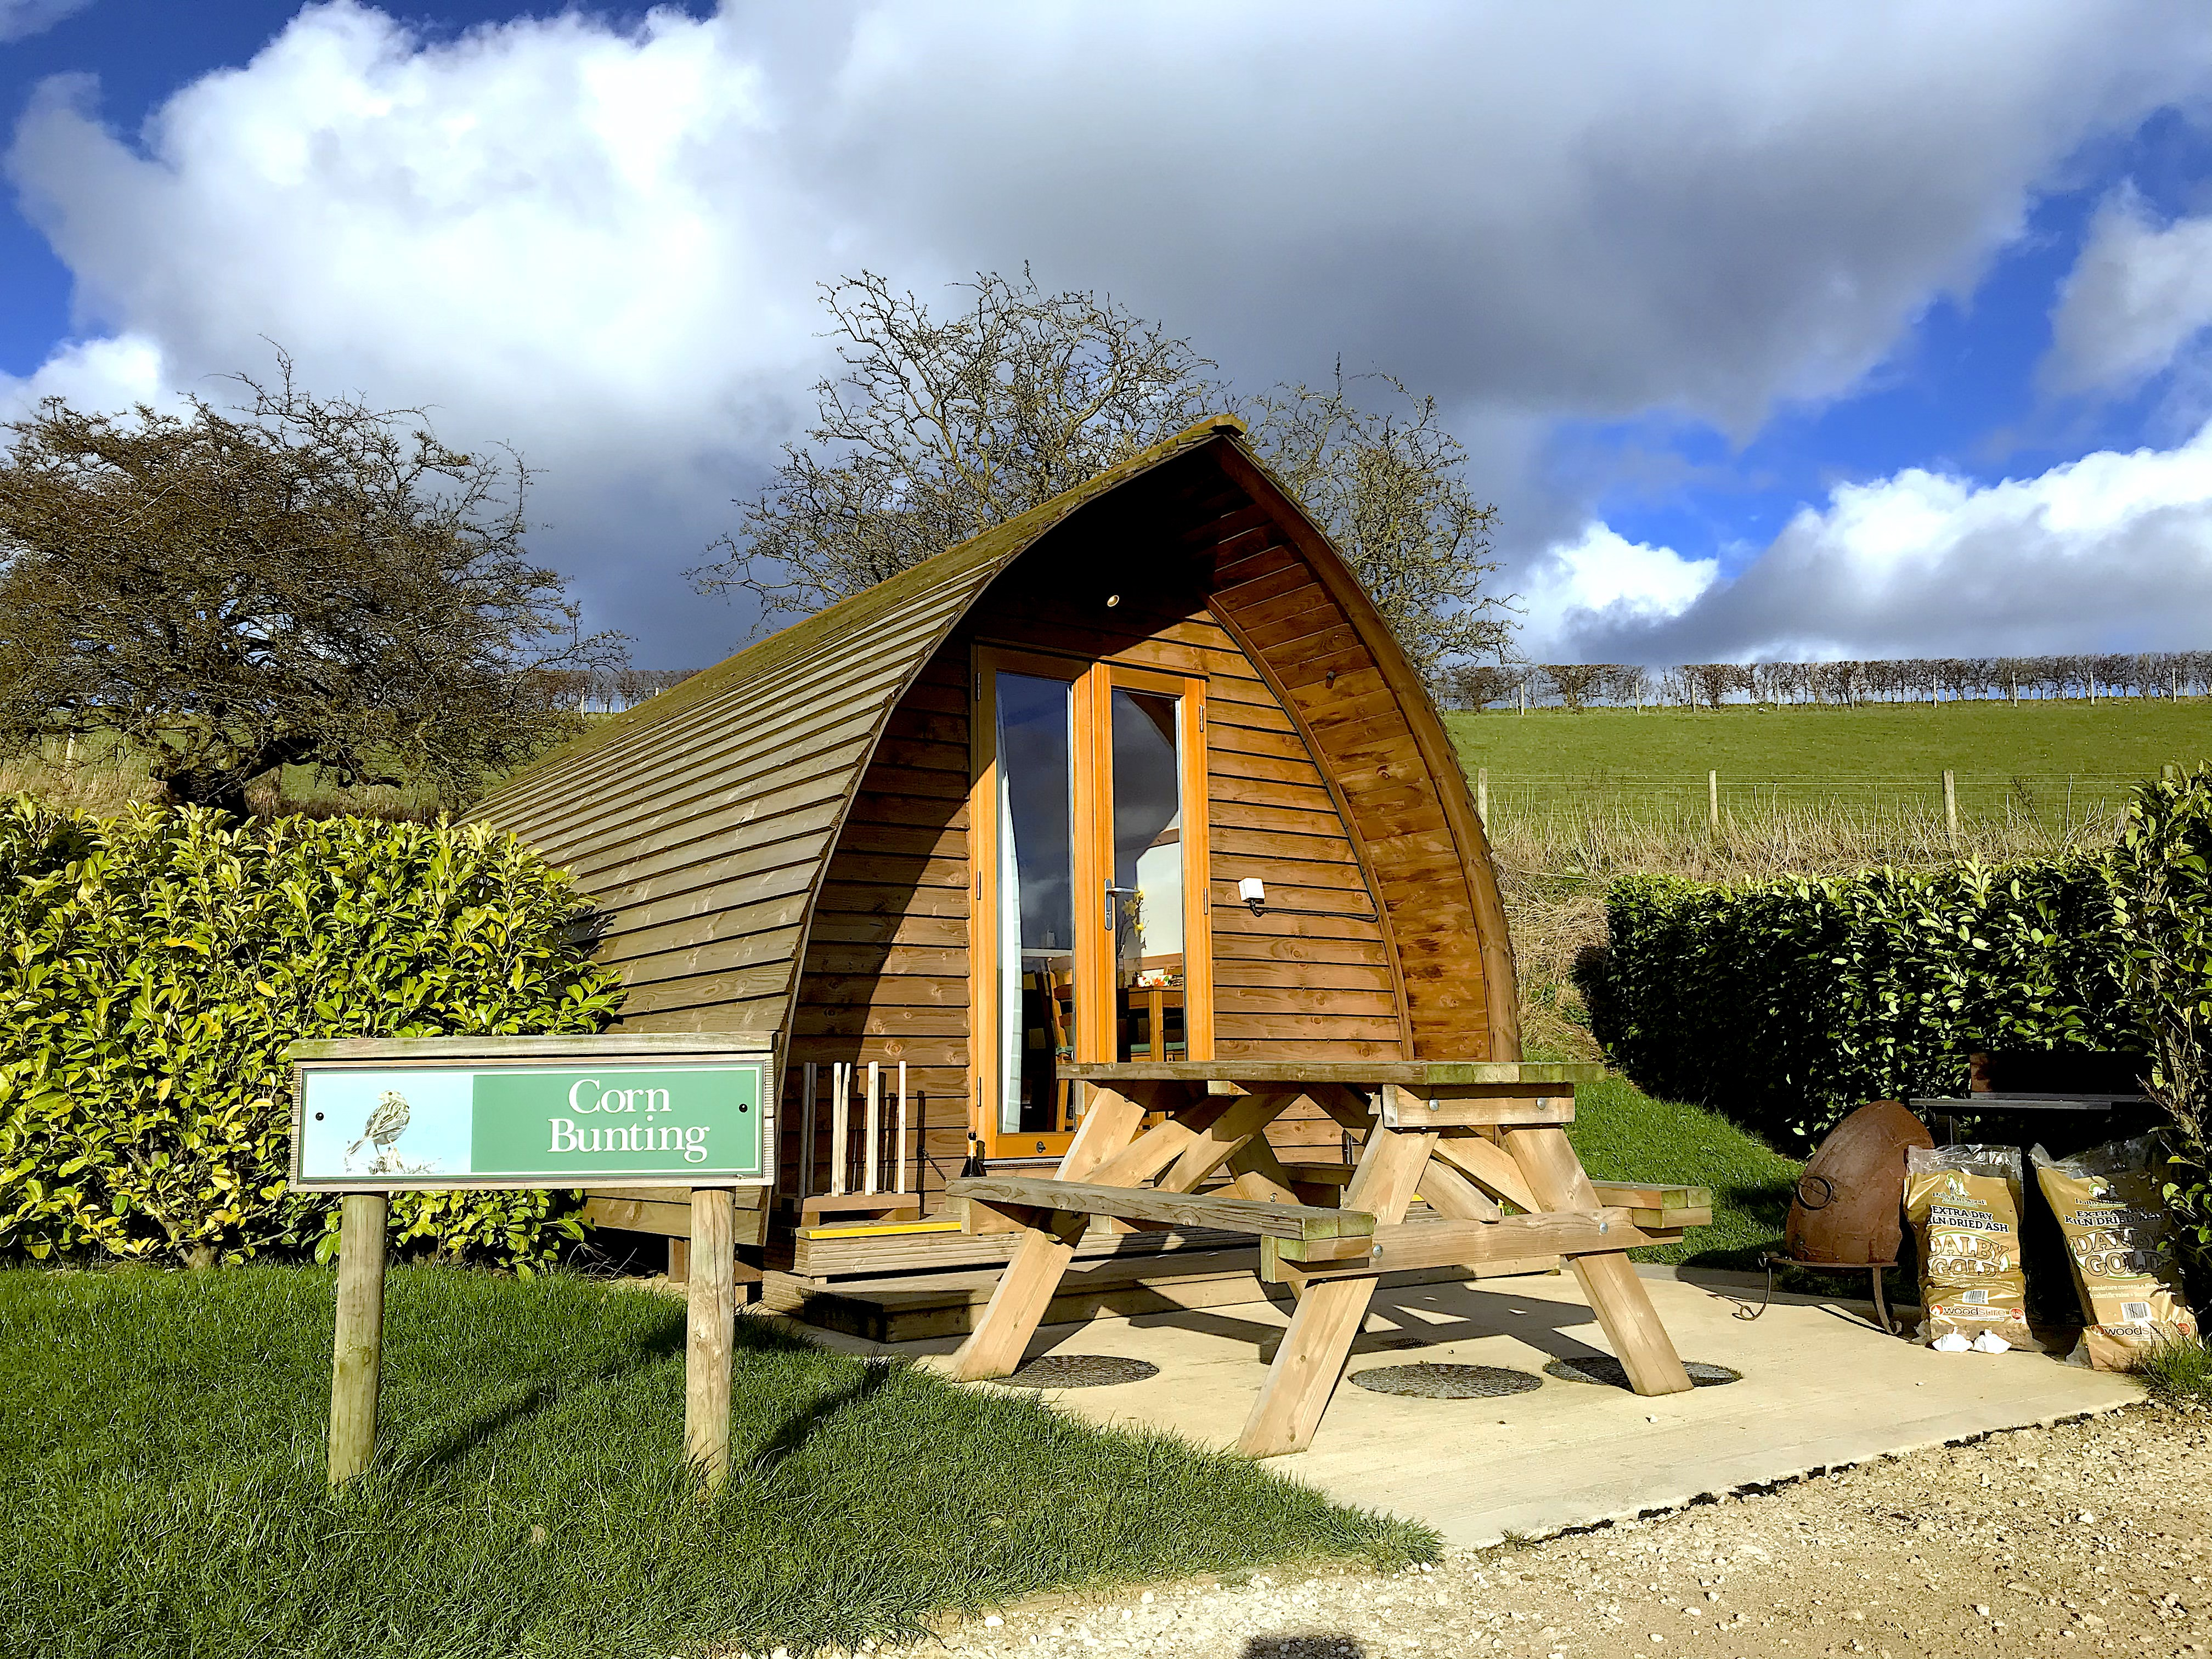 Humble_Bee_Farm_glamping_Yorkshire_Travel_The_Harrogate_Girl64